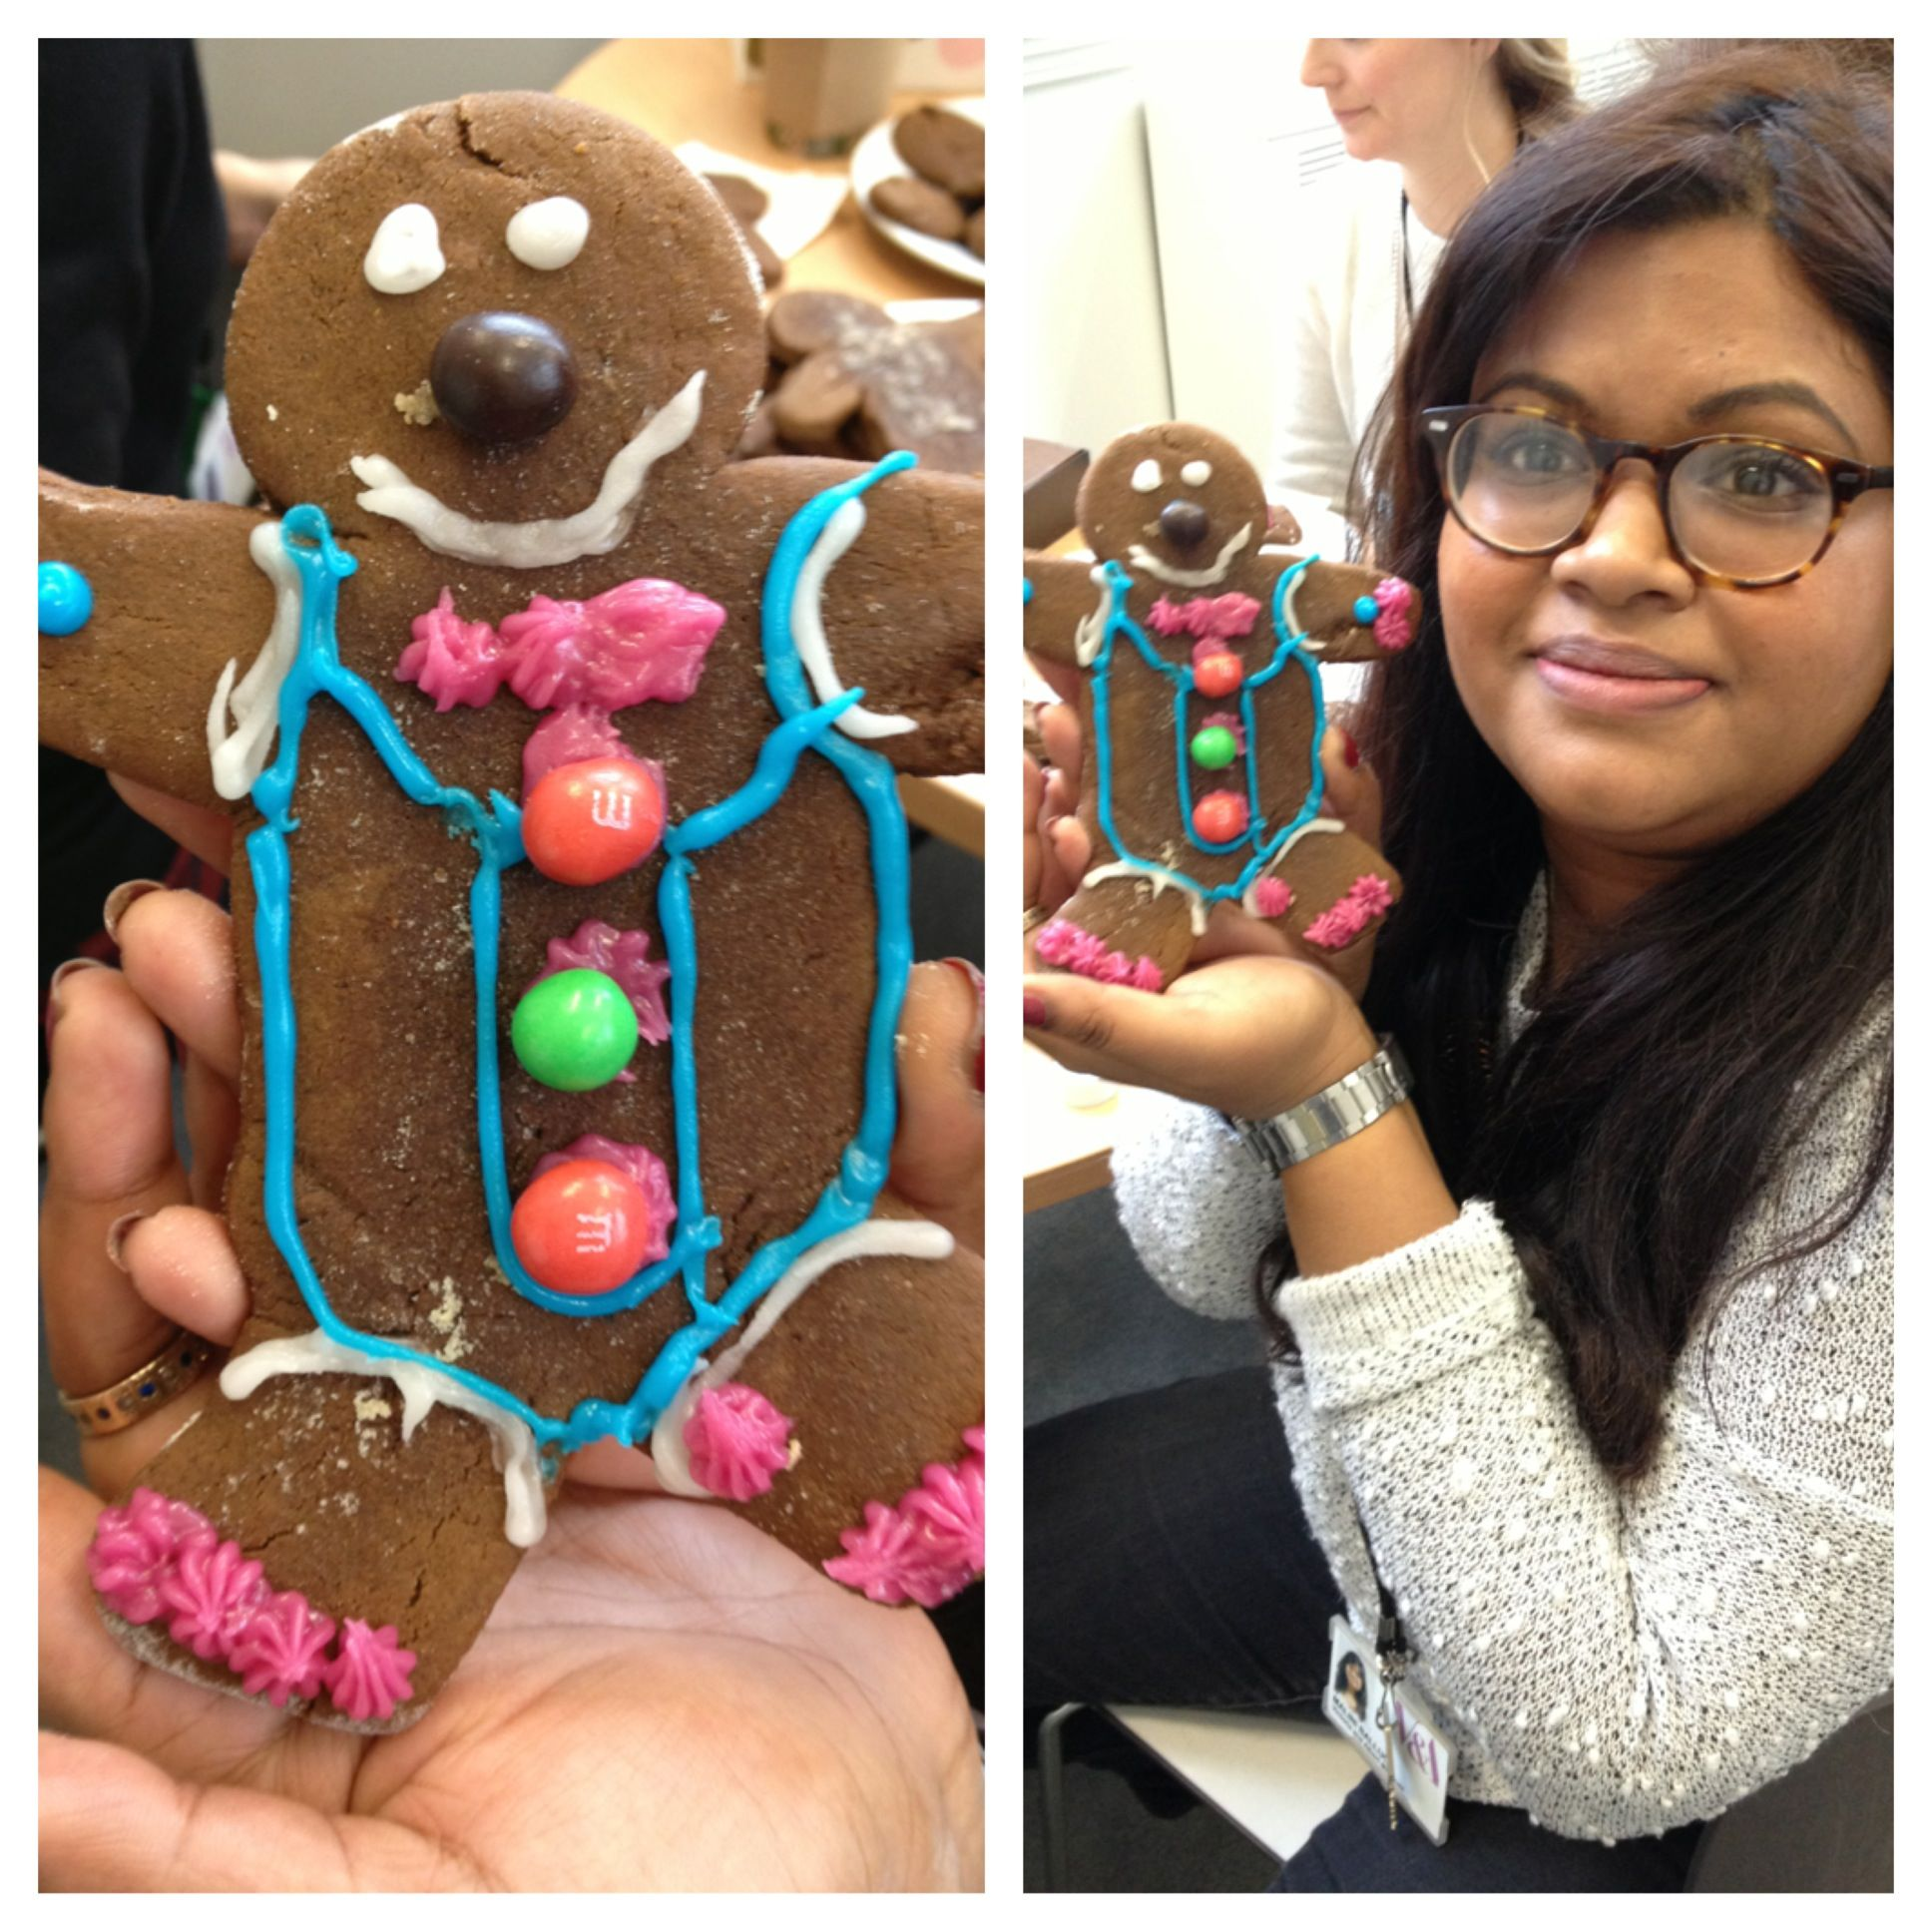 Malini's marvelous man of the gingerbread variety